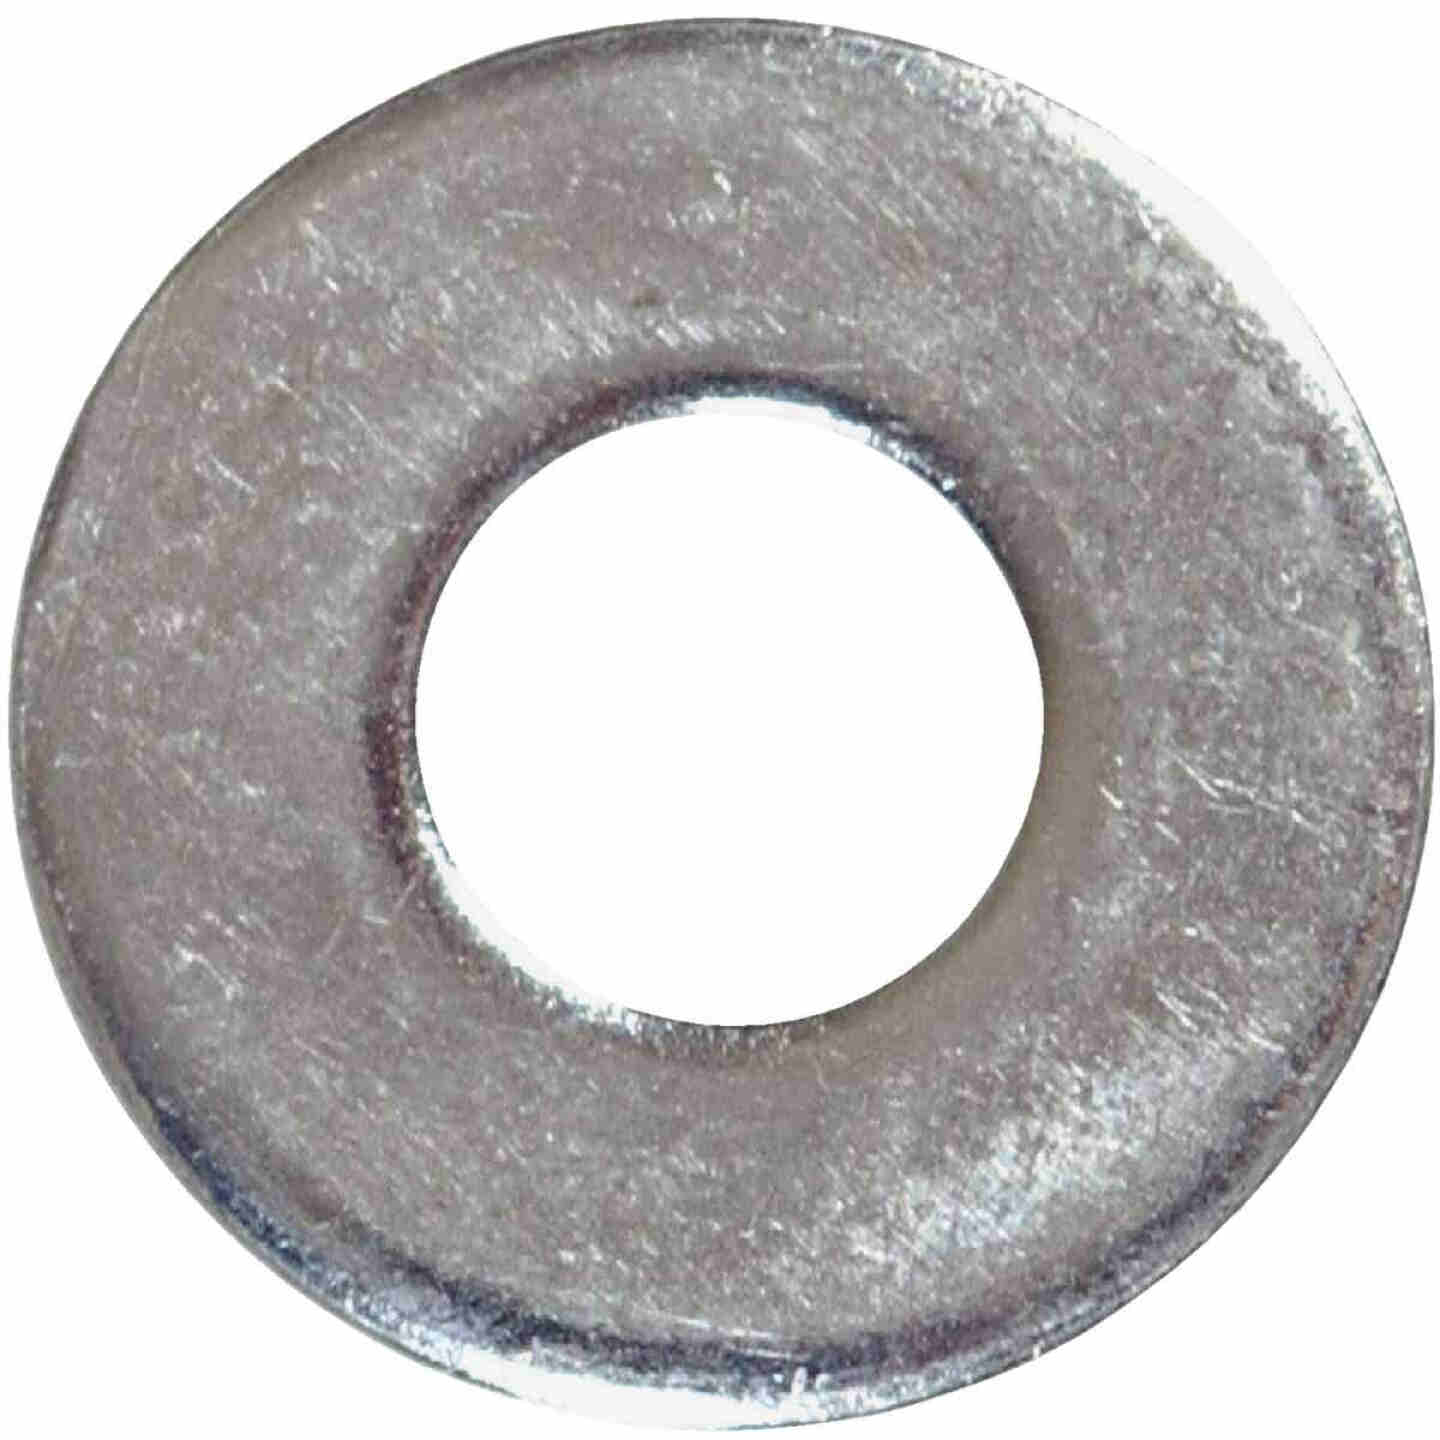 Hillman 5/16 In. Steel Zinc Plated Flat USS Washer (435 Ct., 5 Lb.) Image 1